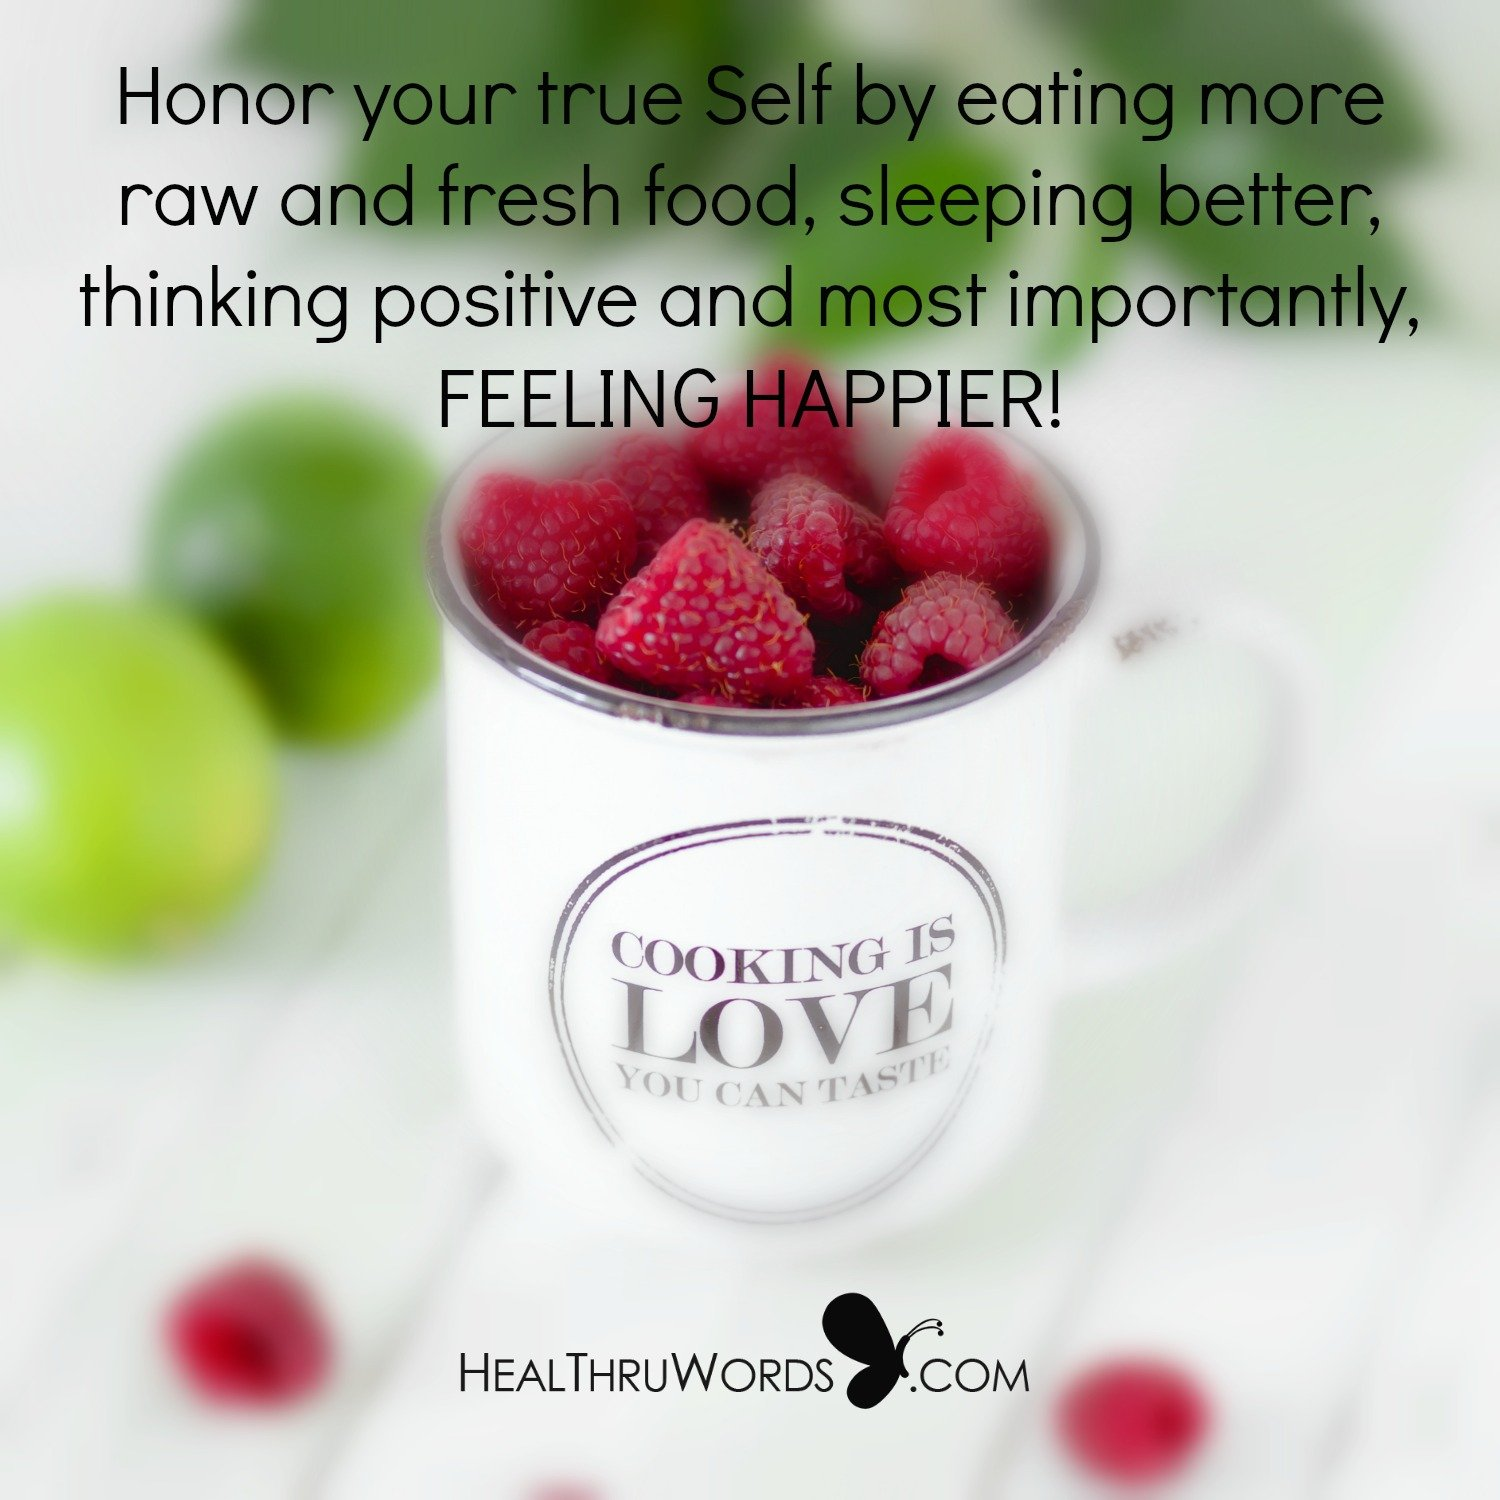 Inspirational Image: Honoring Your Self